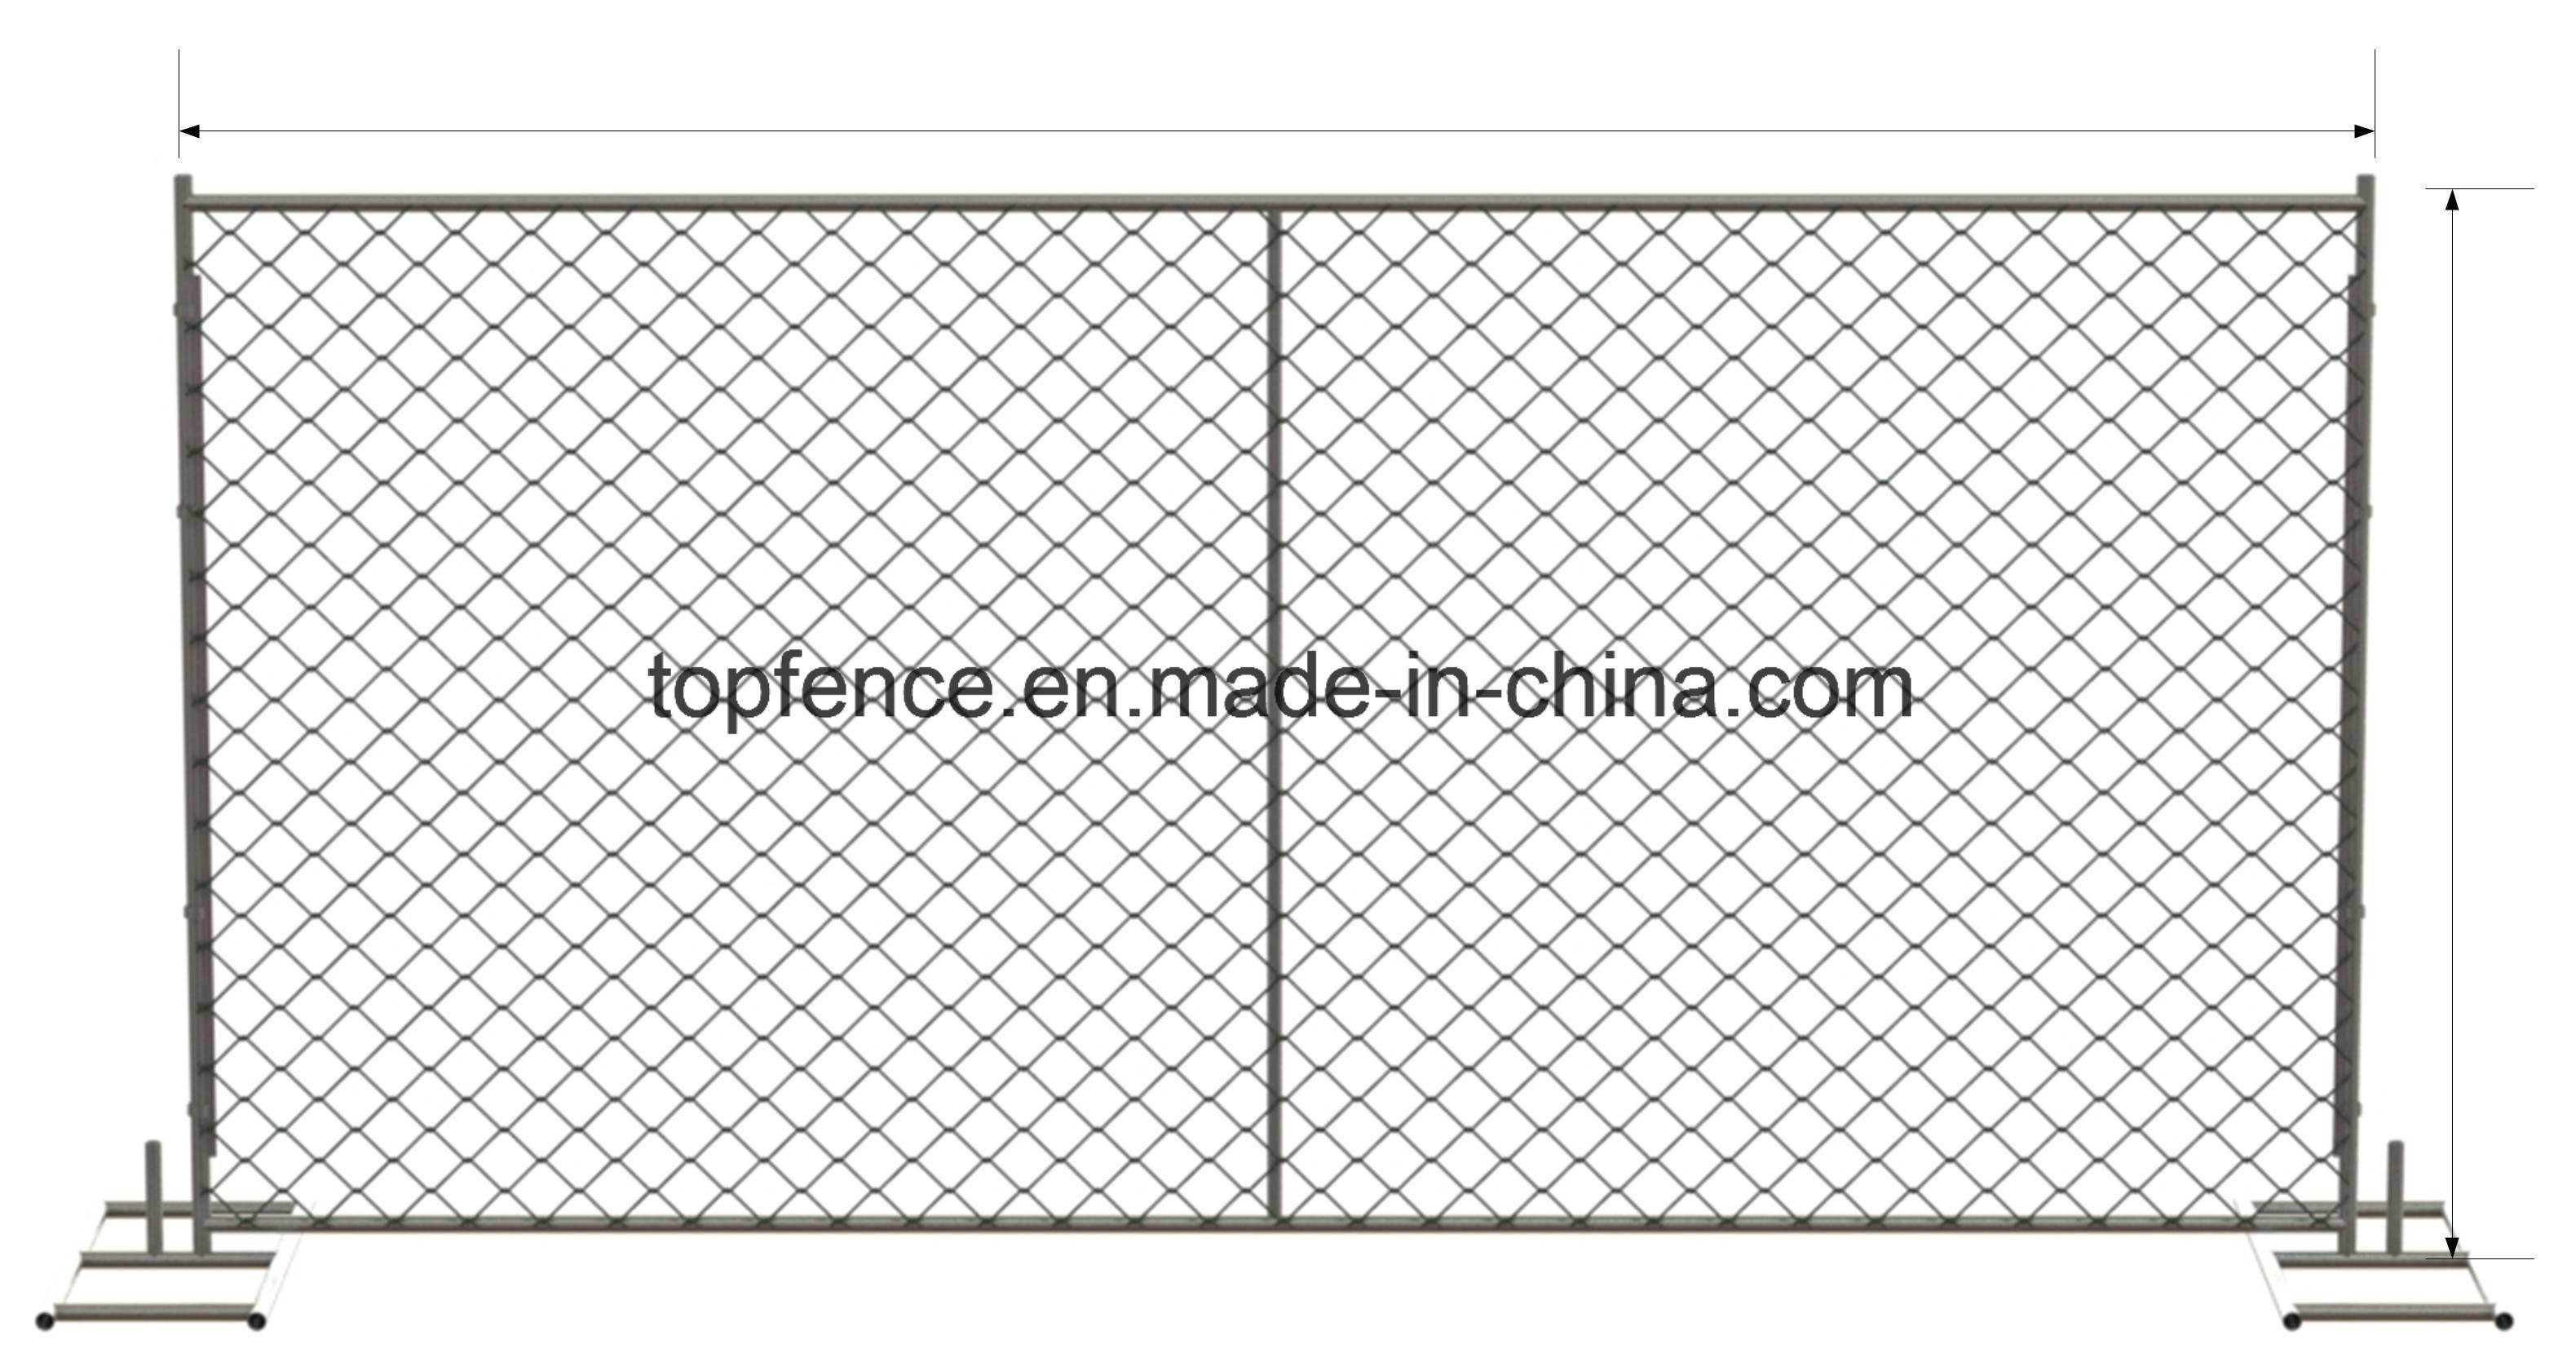 Chain Link Temporary Fencing Panels 6FT X 12FT, 6FT X 14FT, 8FT X 14FT Chain Mesh Temp Fence Panels for Sale